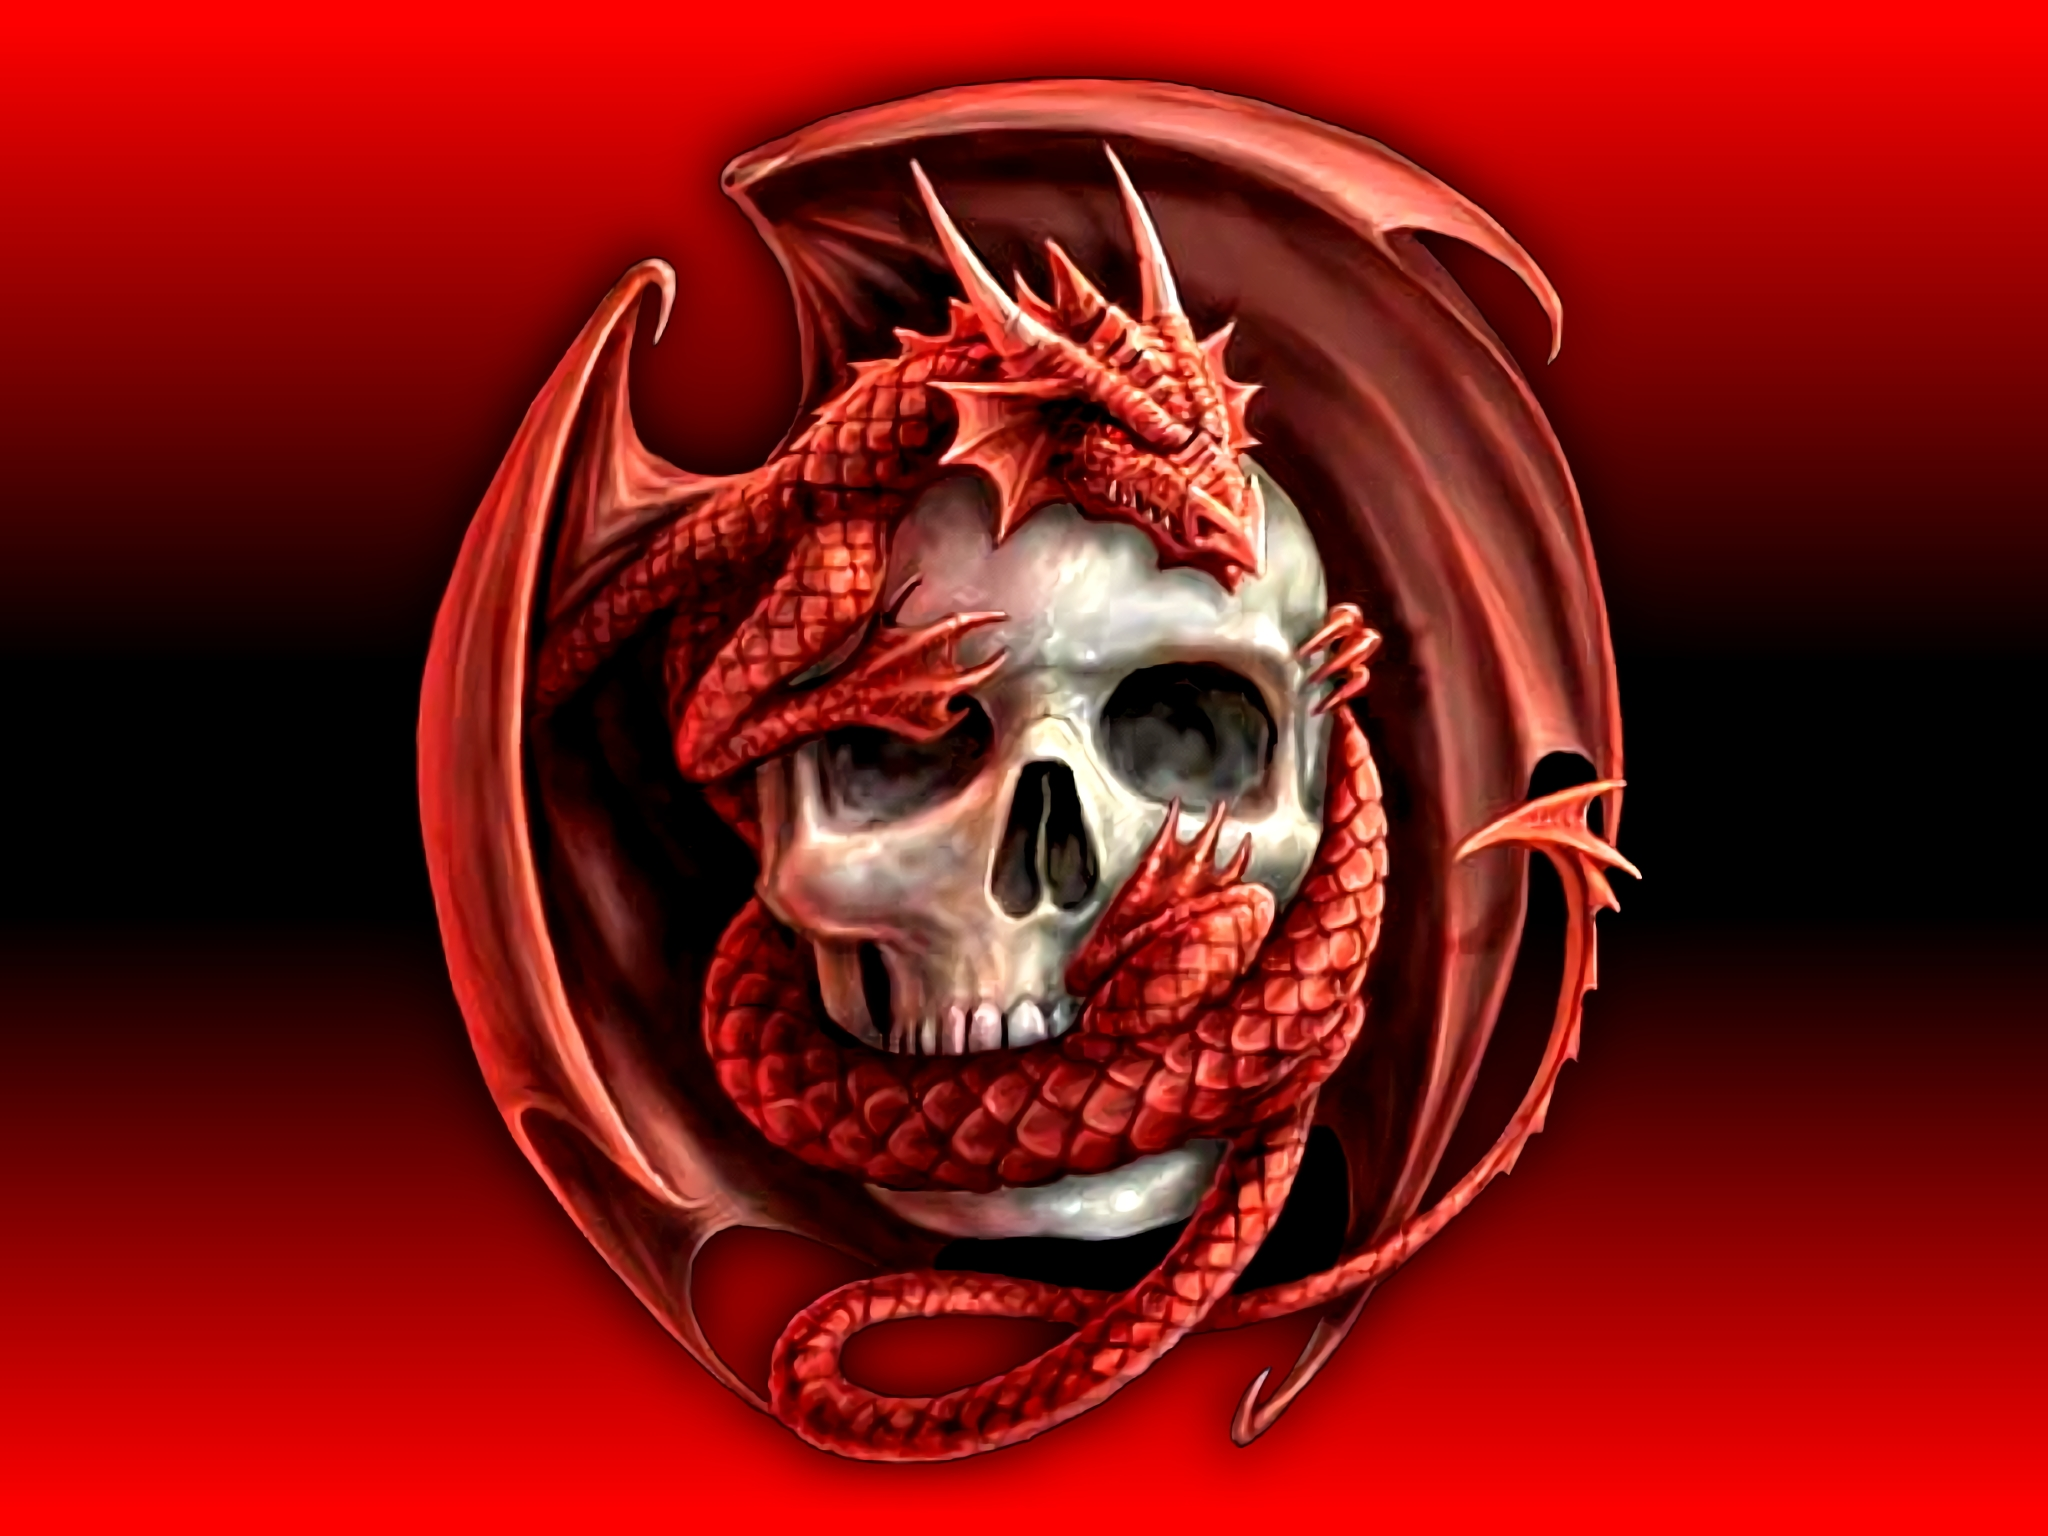 skull wallpapers high quality download free | wallpapers | pinterest